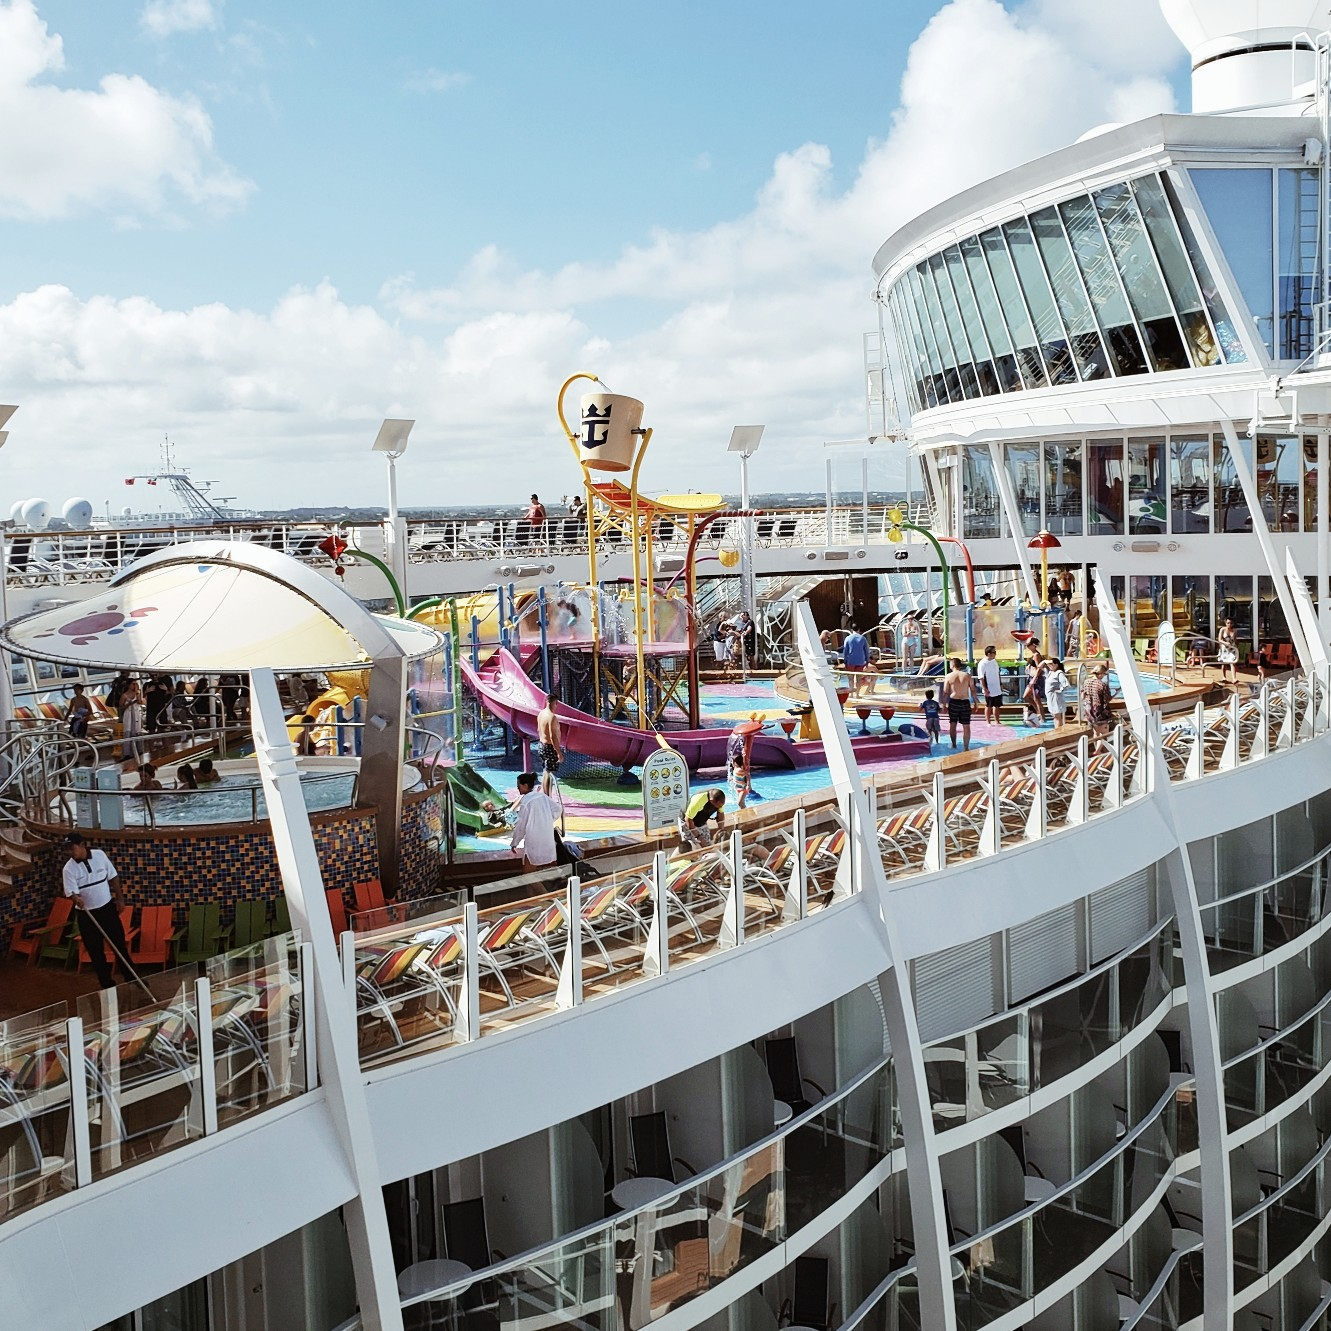 Royal Caribbean Symphony of the Seas The World's Largest Ship